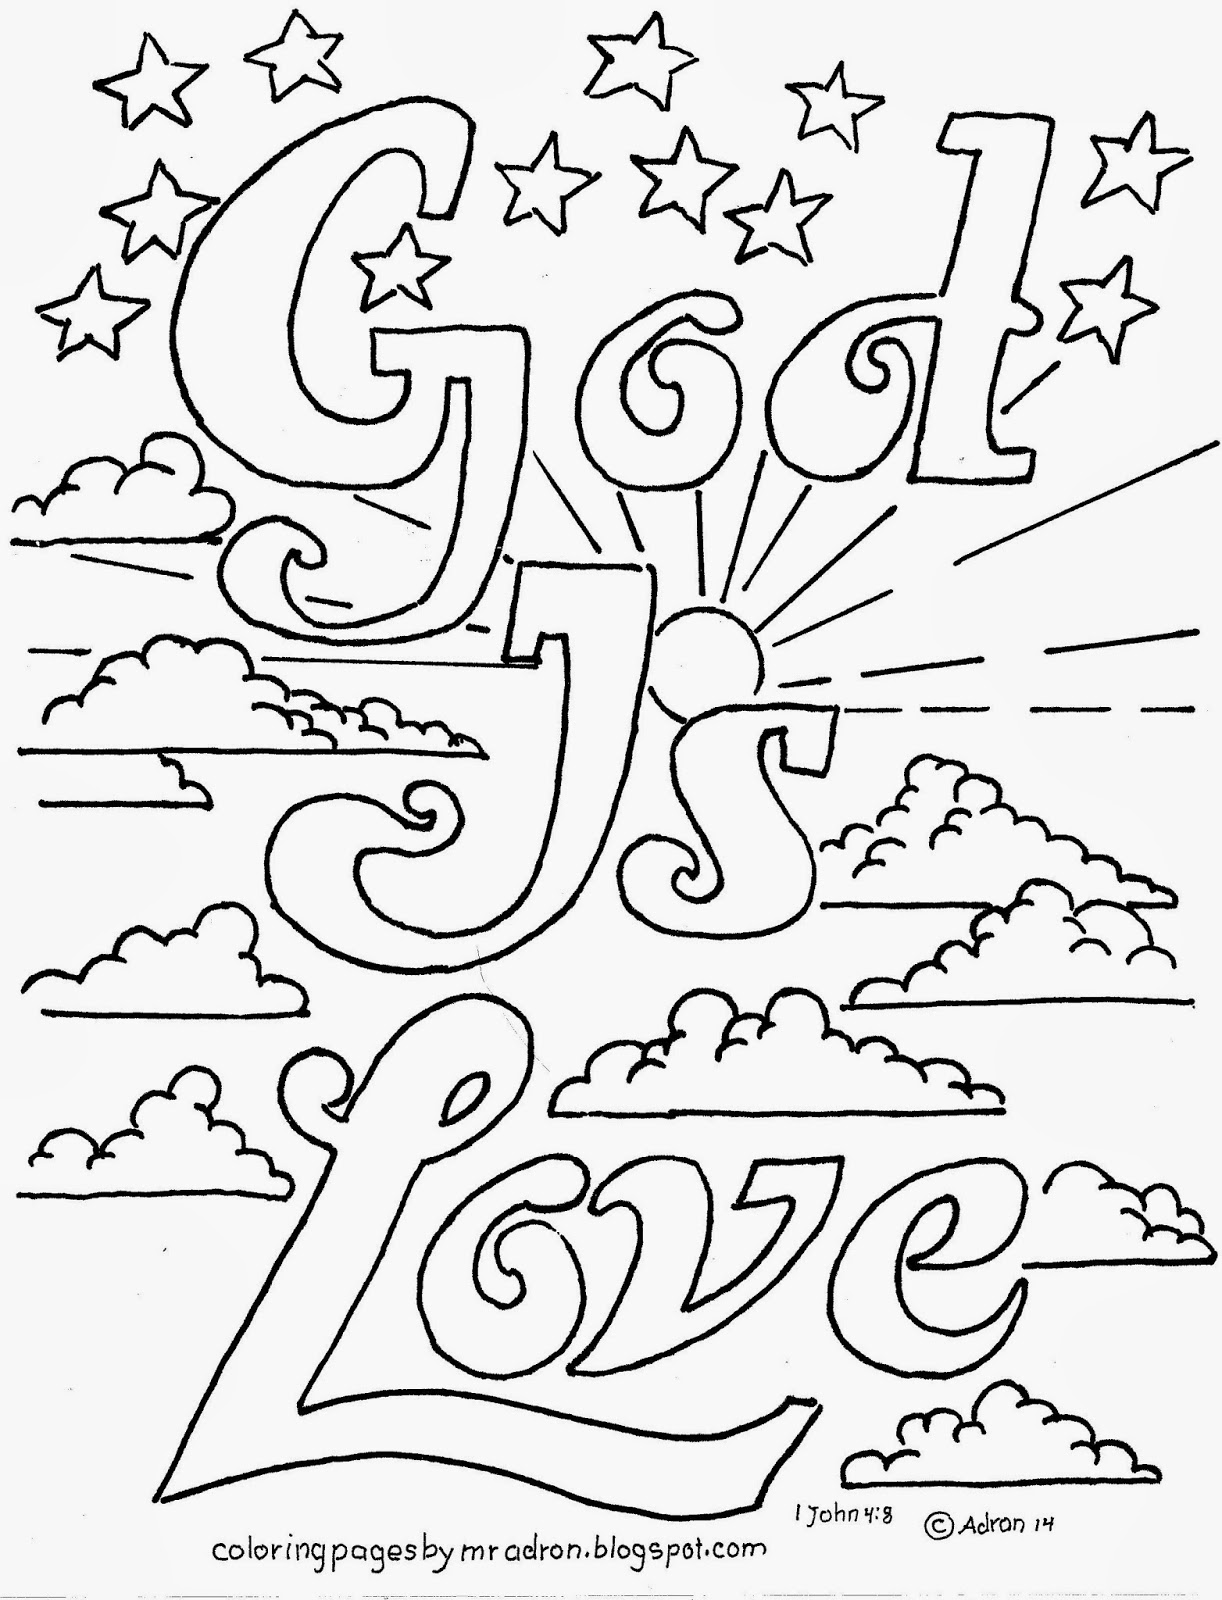 coloring picture love coloring pages for kids by mr adron god is love picture love coloring